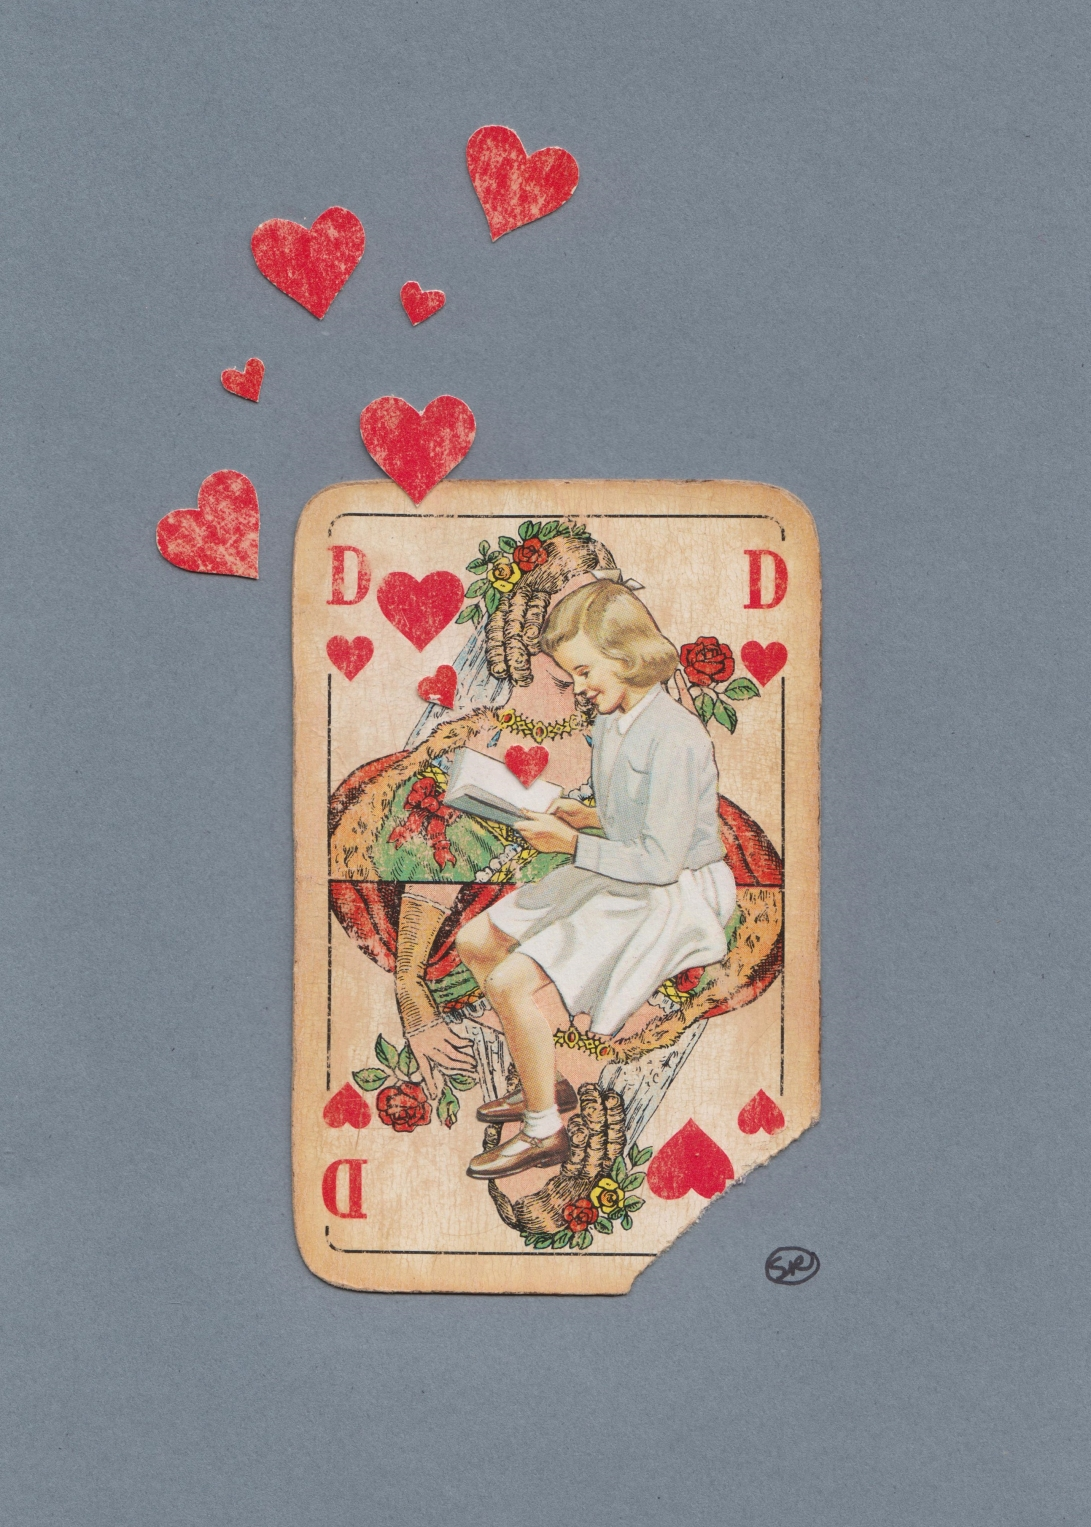 Dame of Hearts